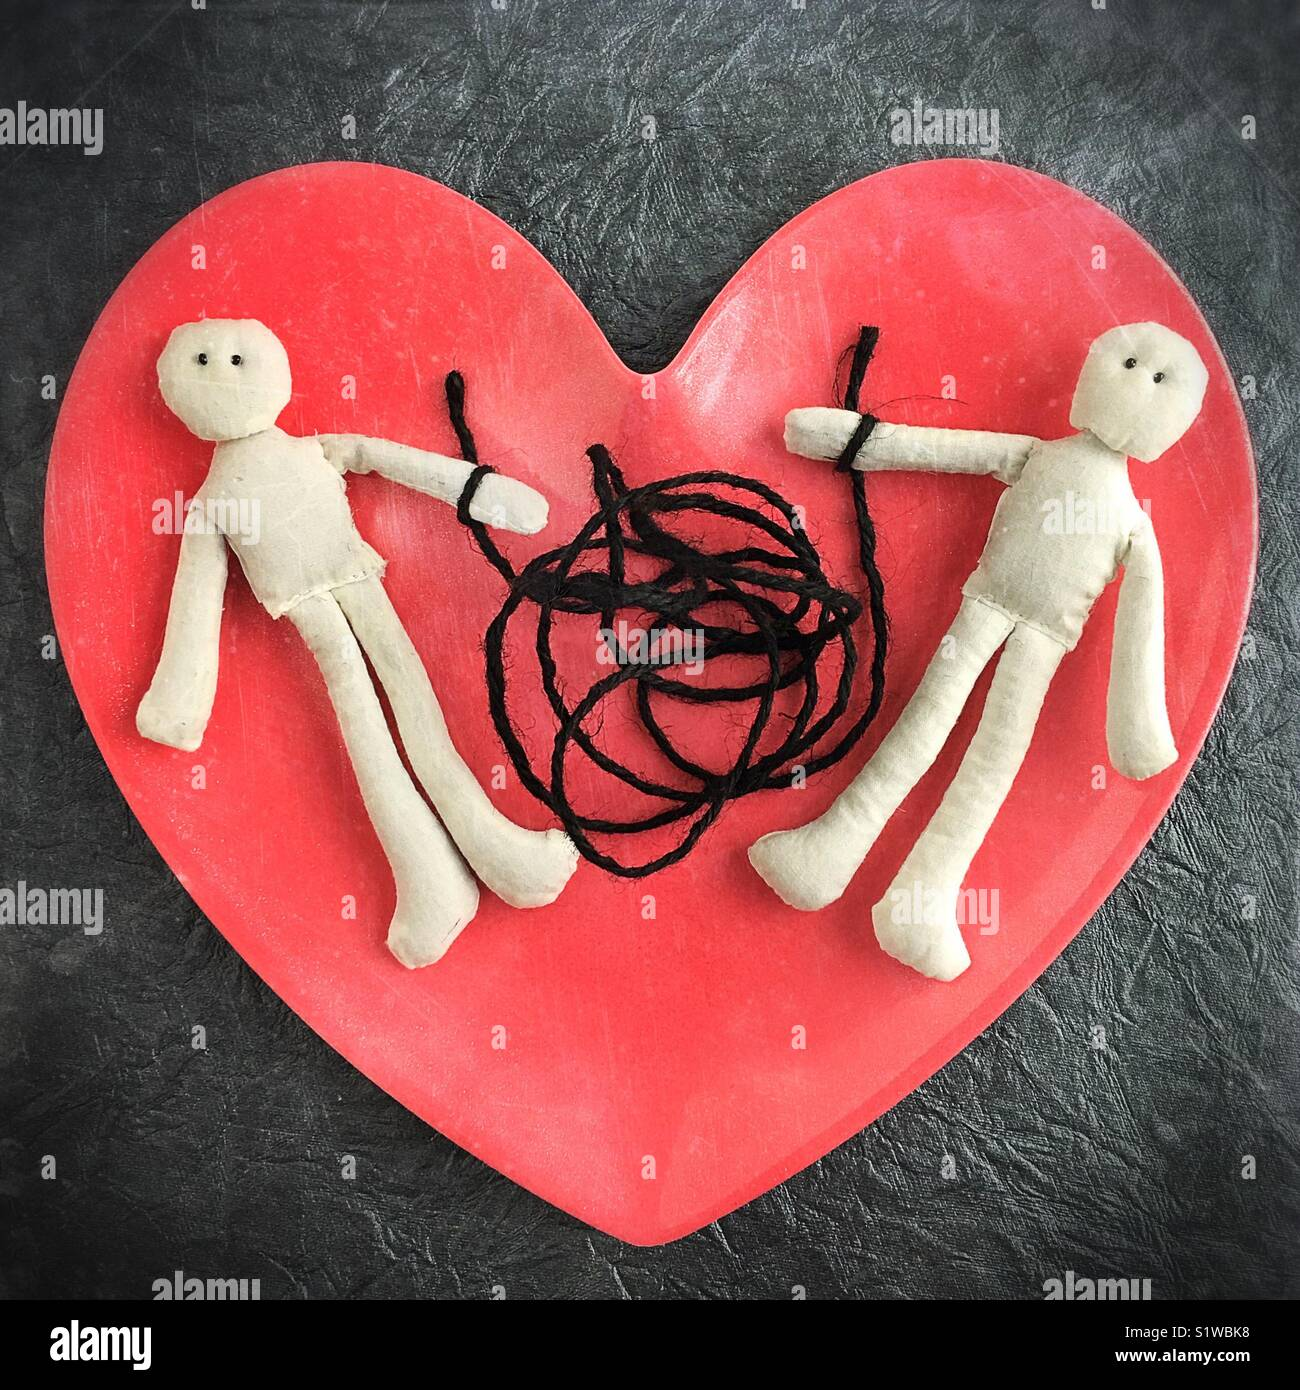 Conceptual dysfunctional relationship. - Stock Image